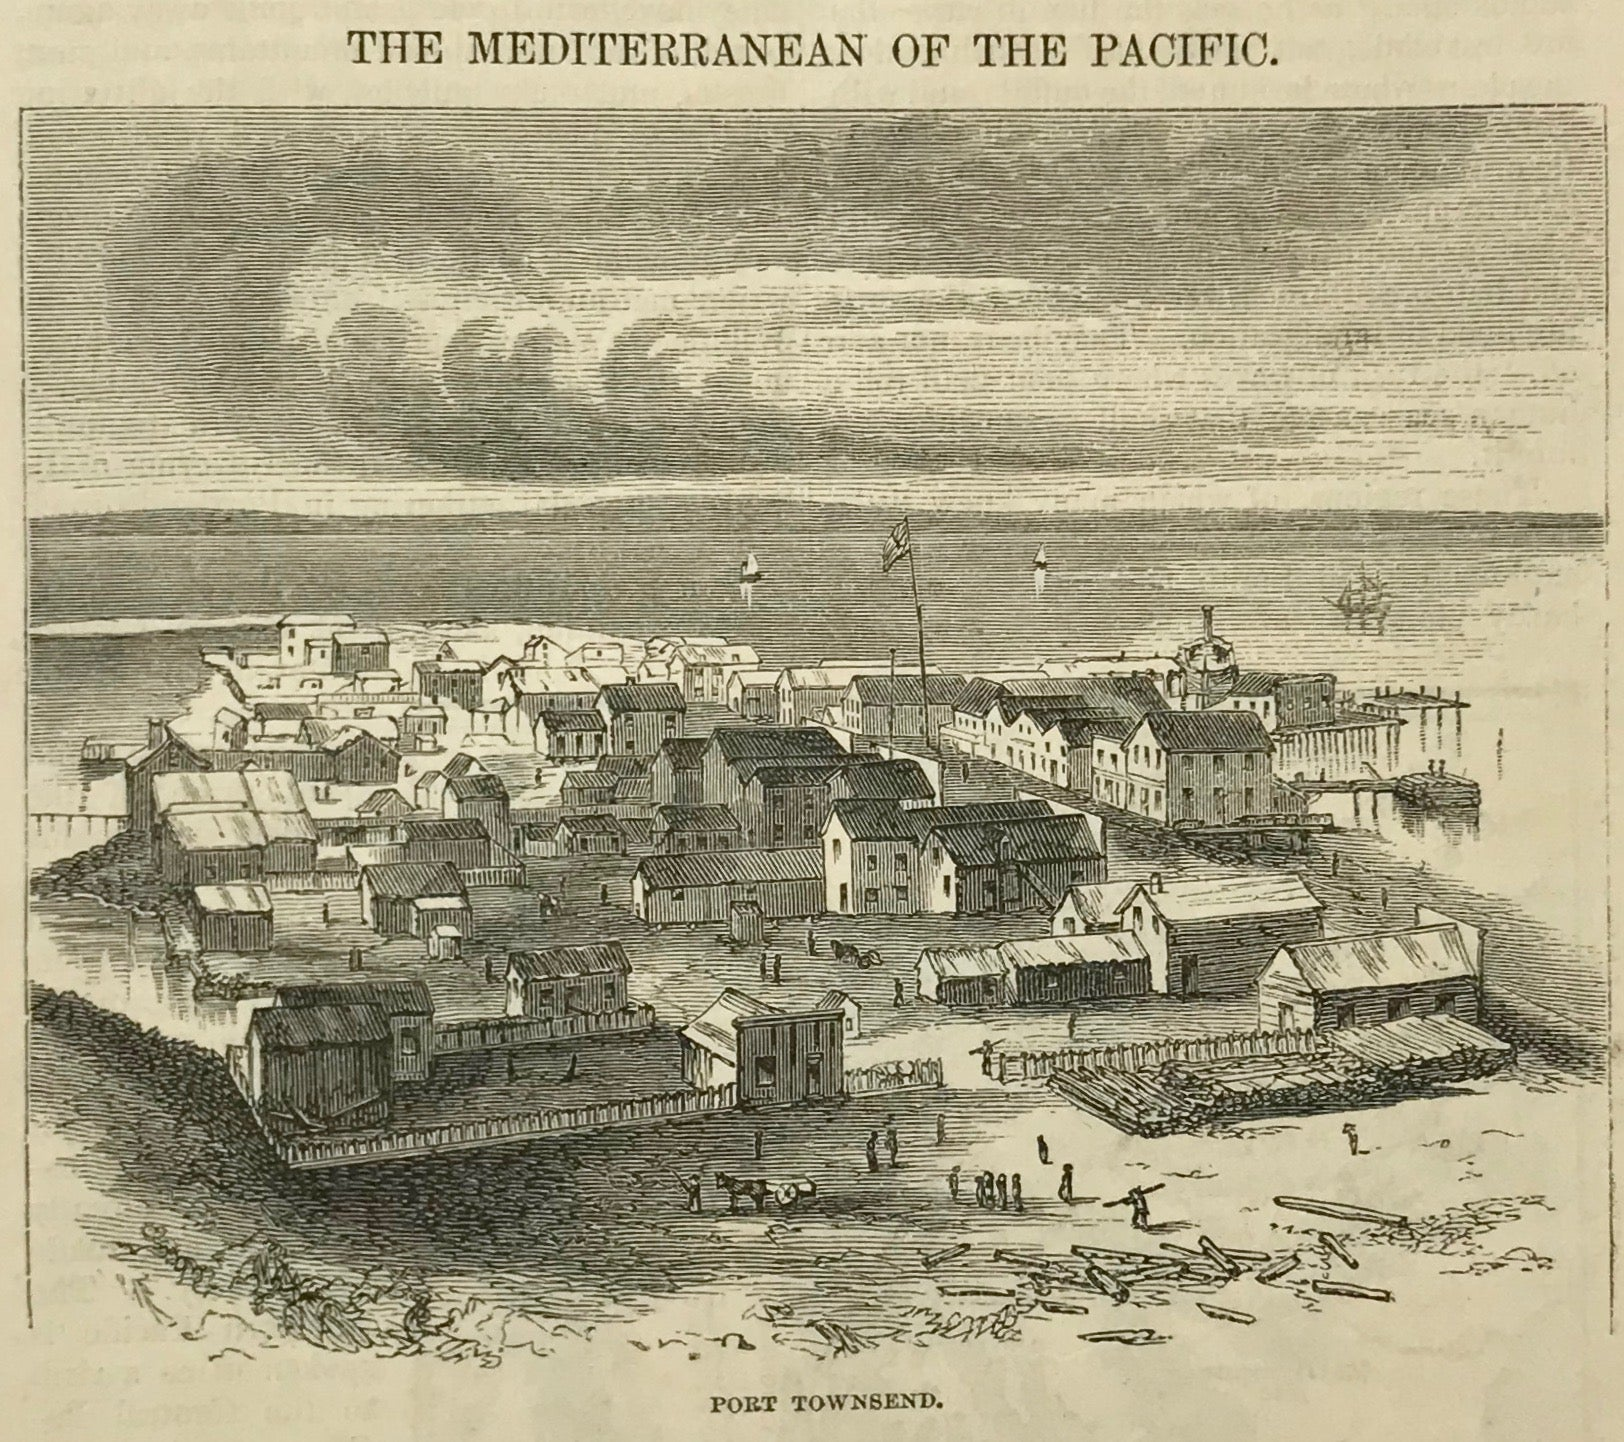 USA Port Townsend  Wood engraving dated 1870. On the reverse side is a sketched map of the Pacific Northwest.